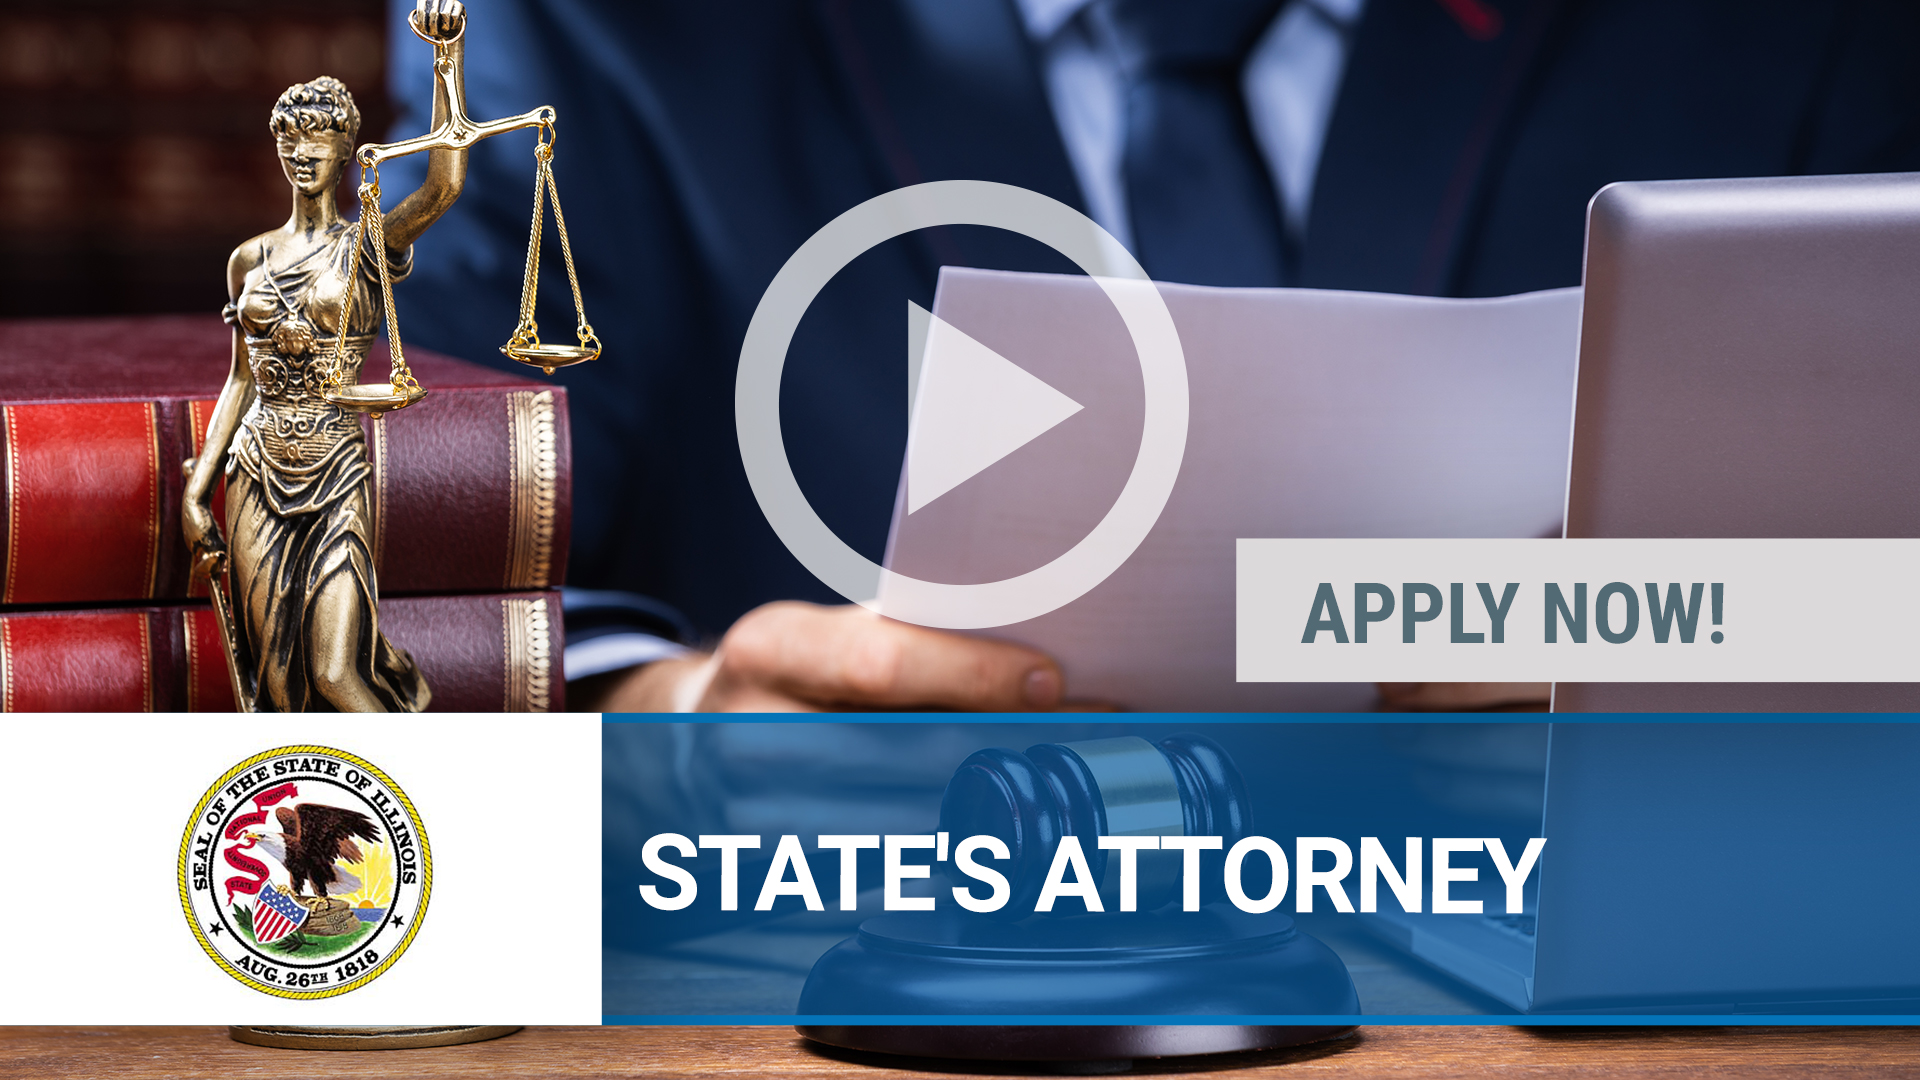 Watch our careers video for available job opening STATE'S ATTORNEY in Galena, IL